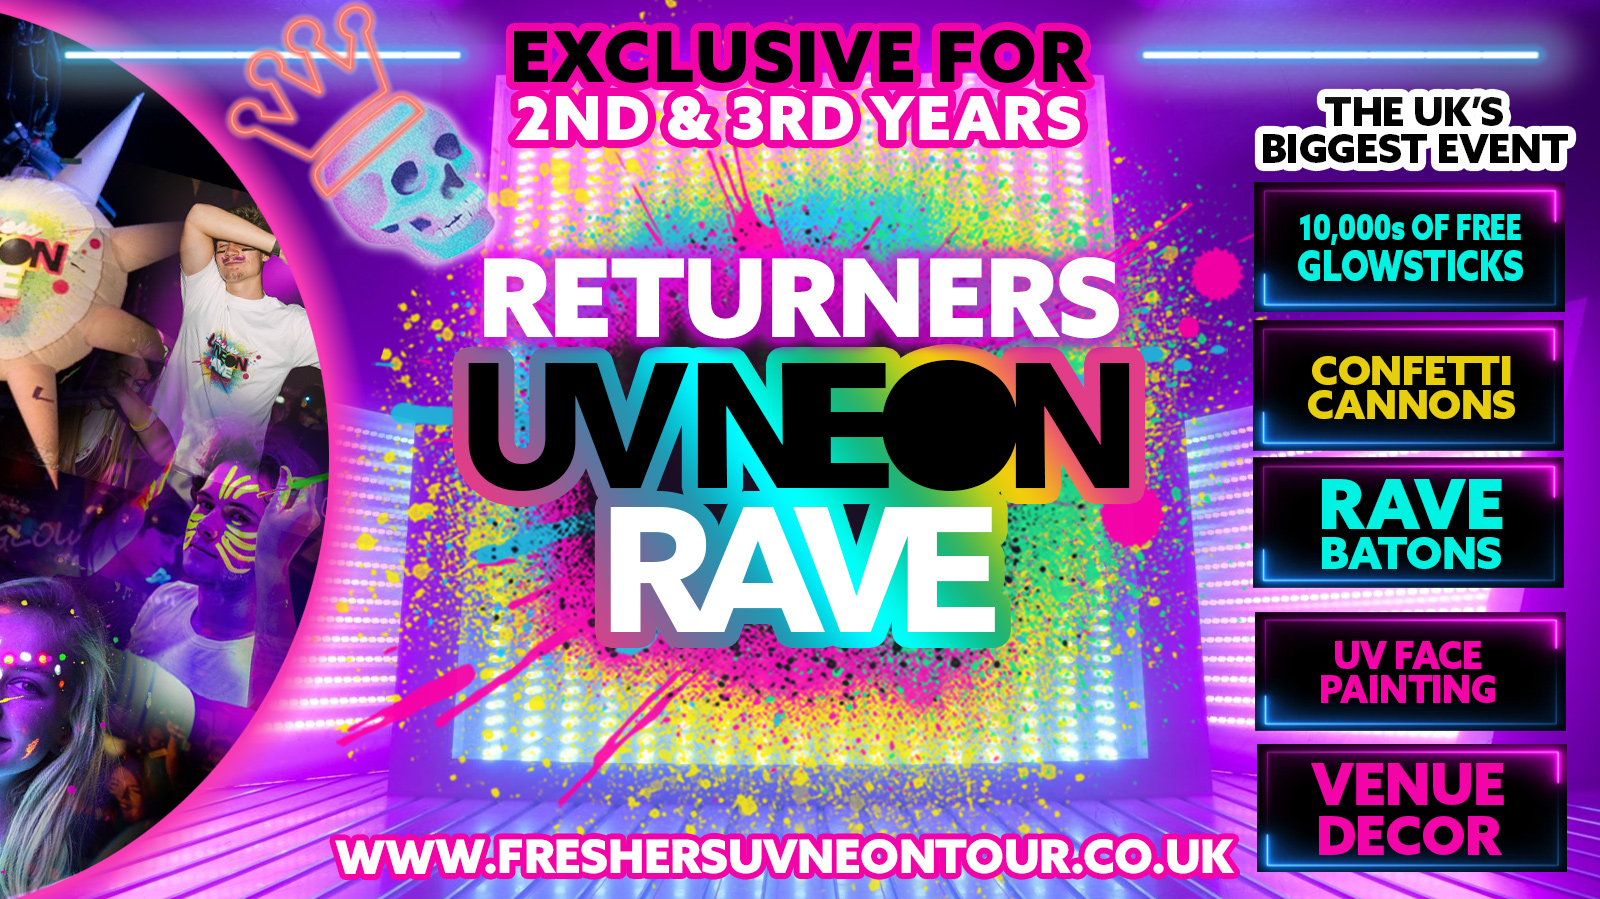 Manchester Returners UV Neon Rave Week 2 | Exclusive for 2nd & 3rd Years